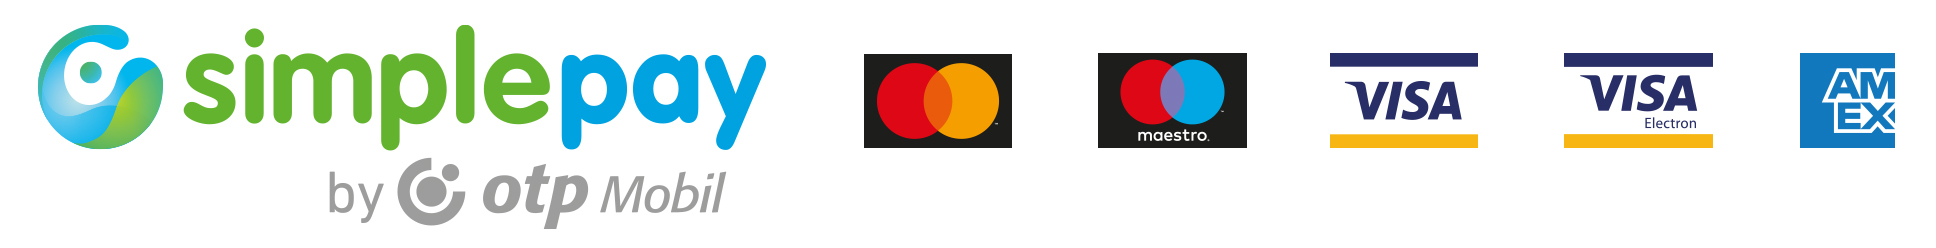 otp_simple_pay_logo